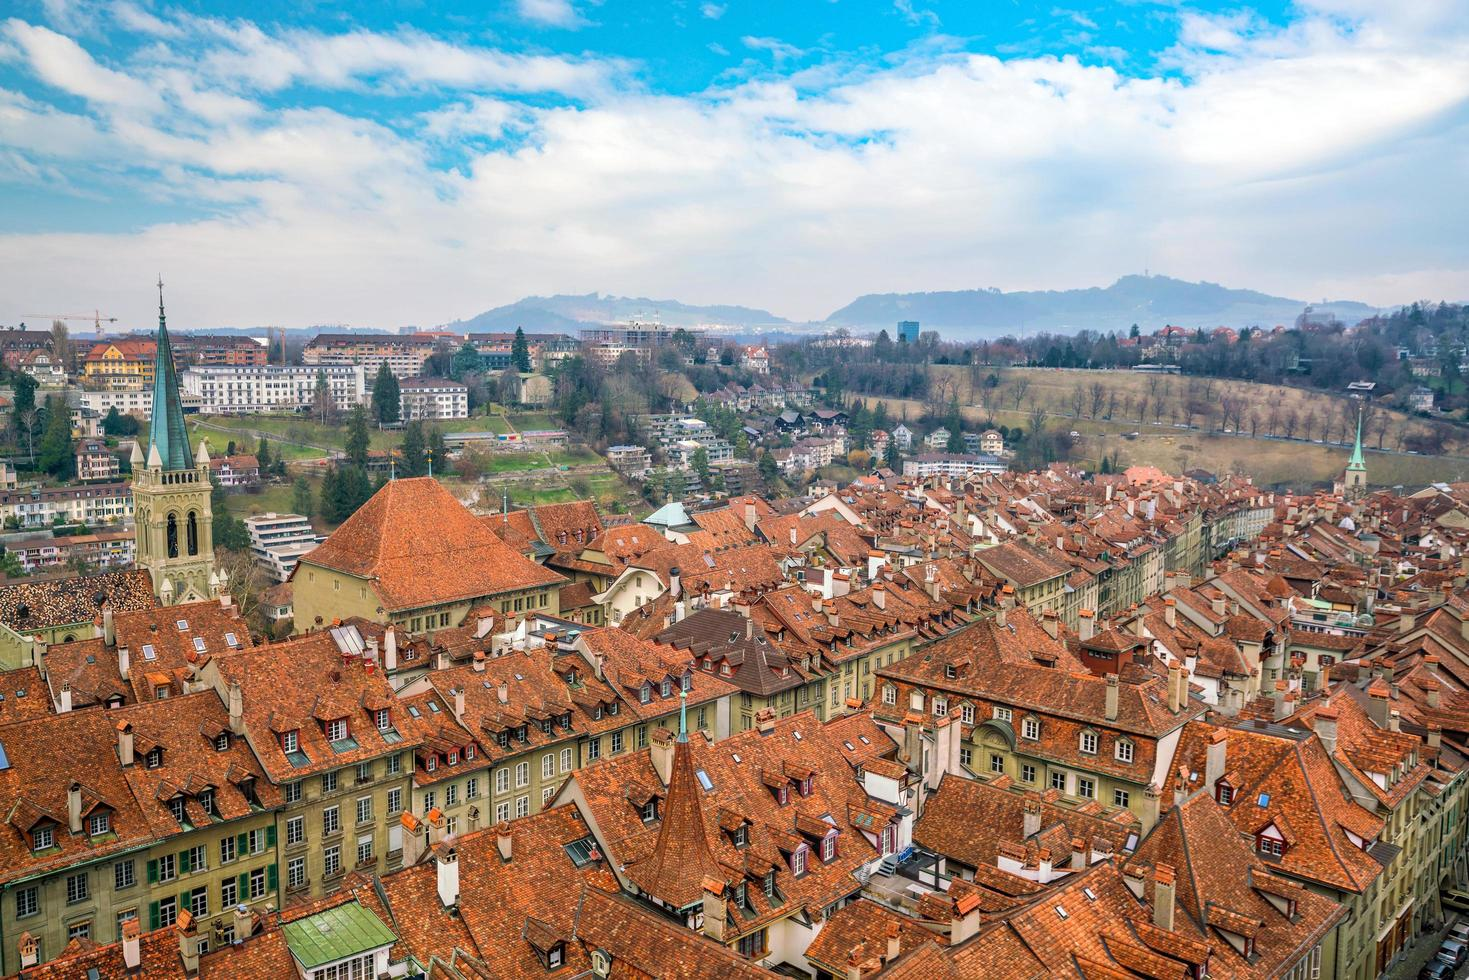 Old town of Bern, capital of Switzerland photo